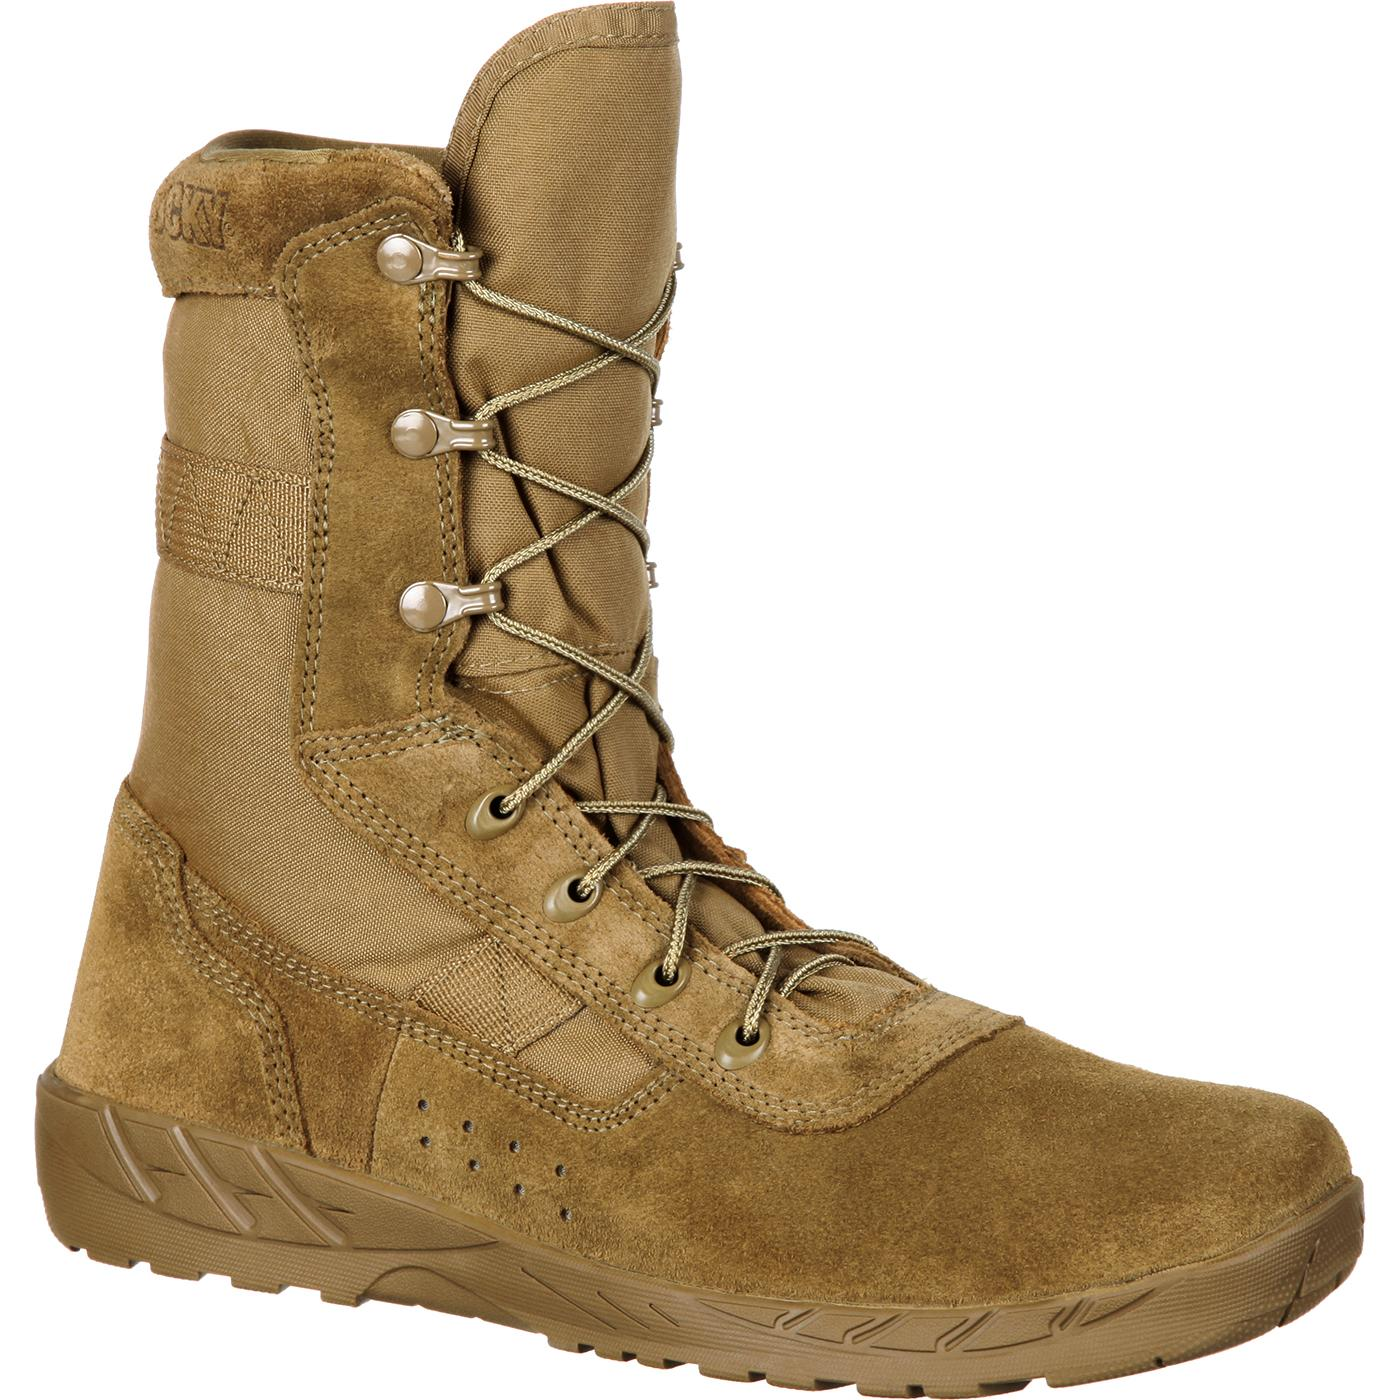 rocky boots rocky c7 cxt lightweight commercial military boot, , large tjkaeol